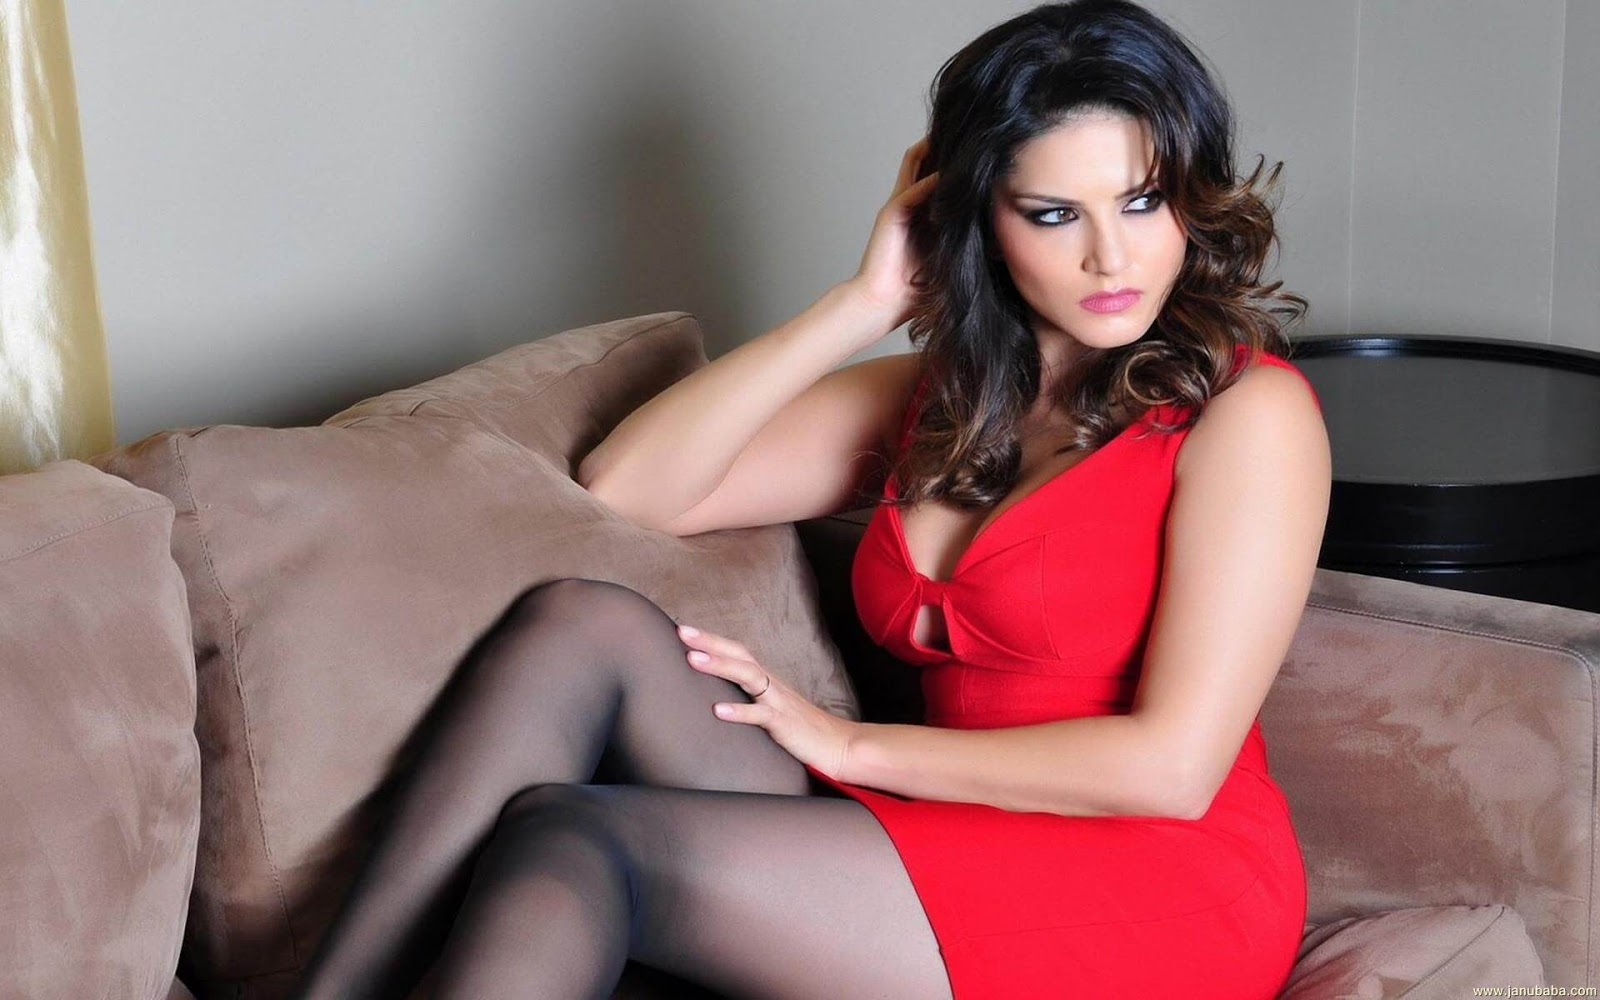 Stunning brunette sunny leone shows off her red lace panties